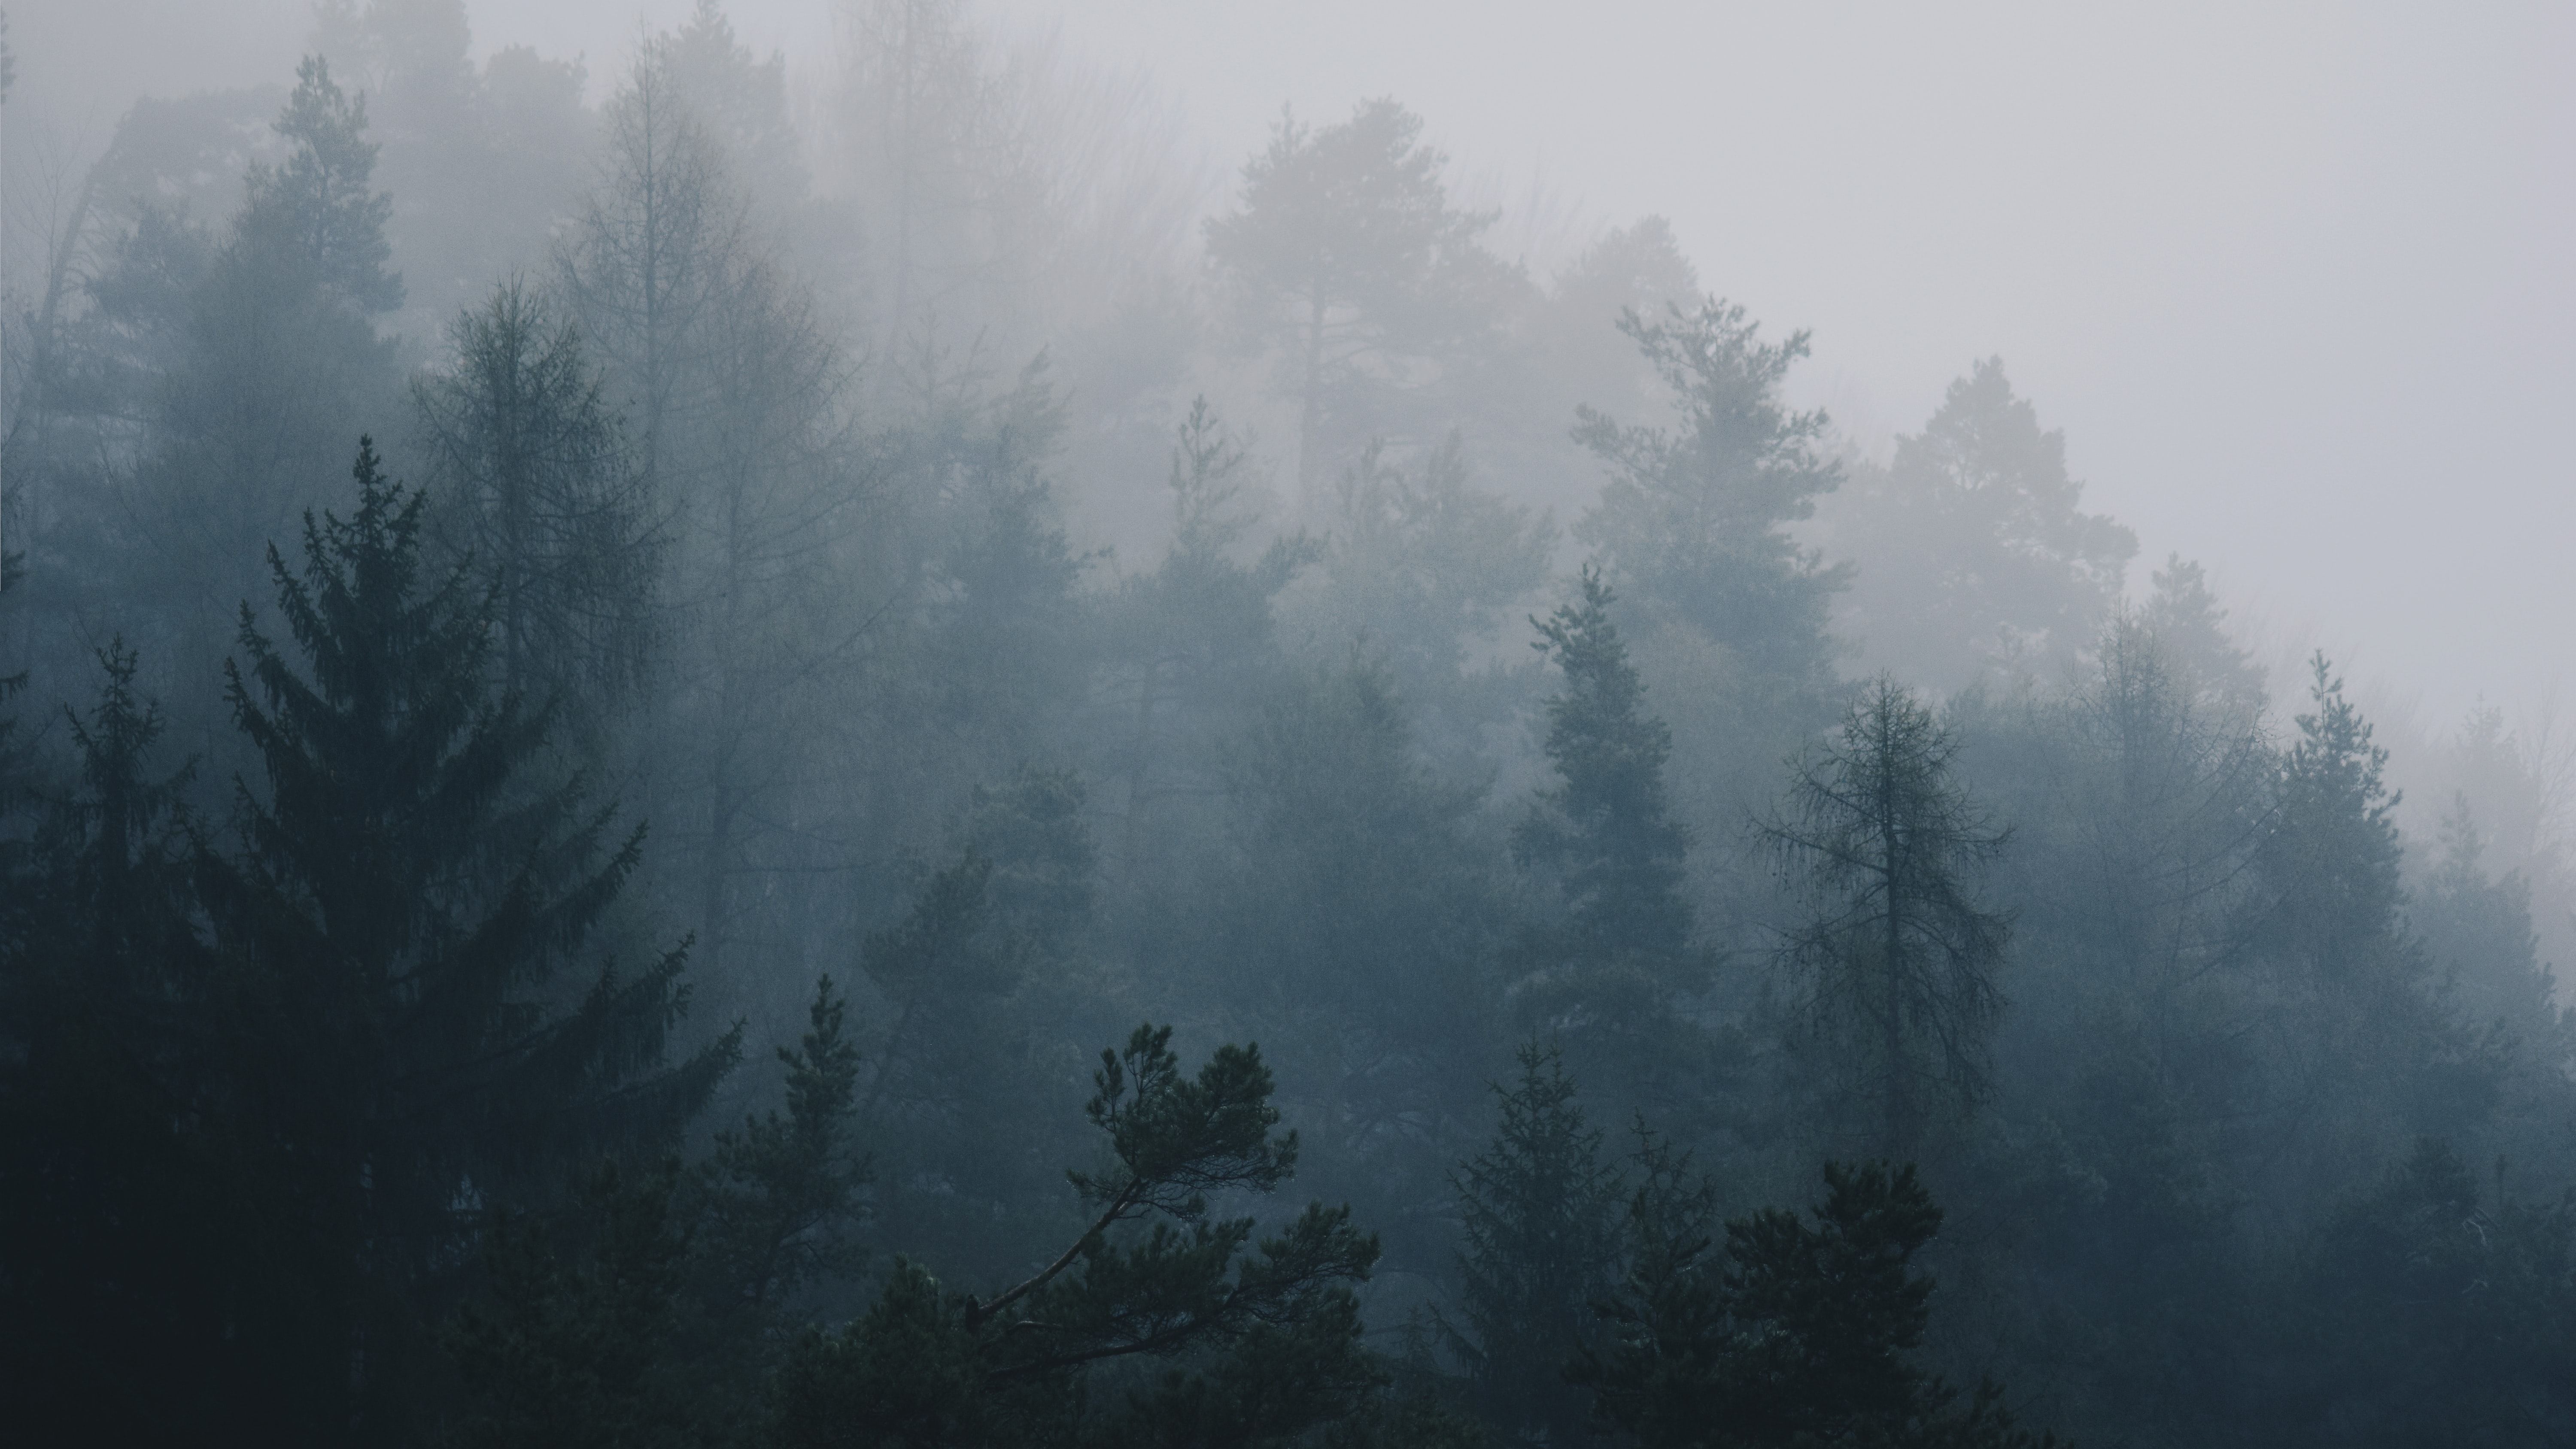 fogs covering trees during daytime